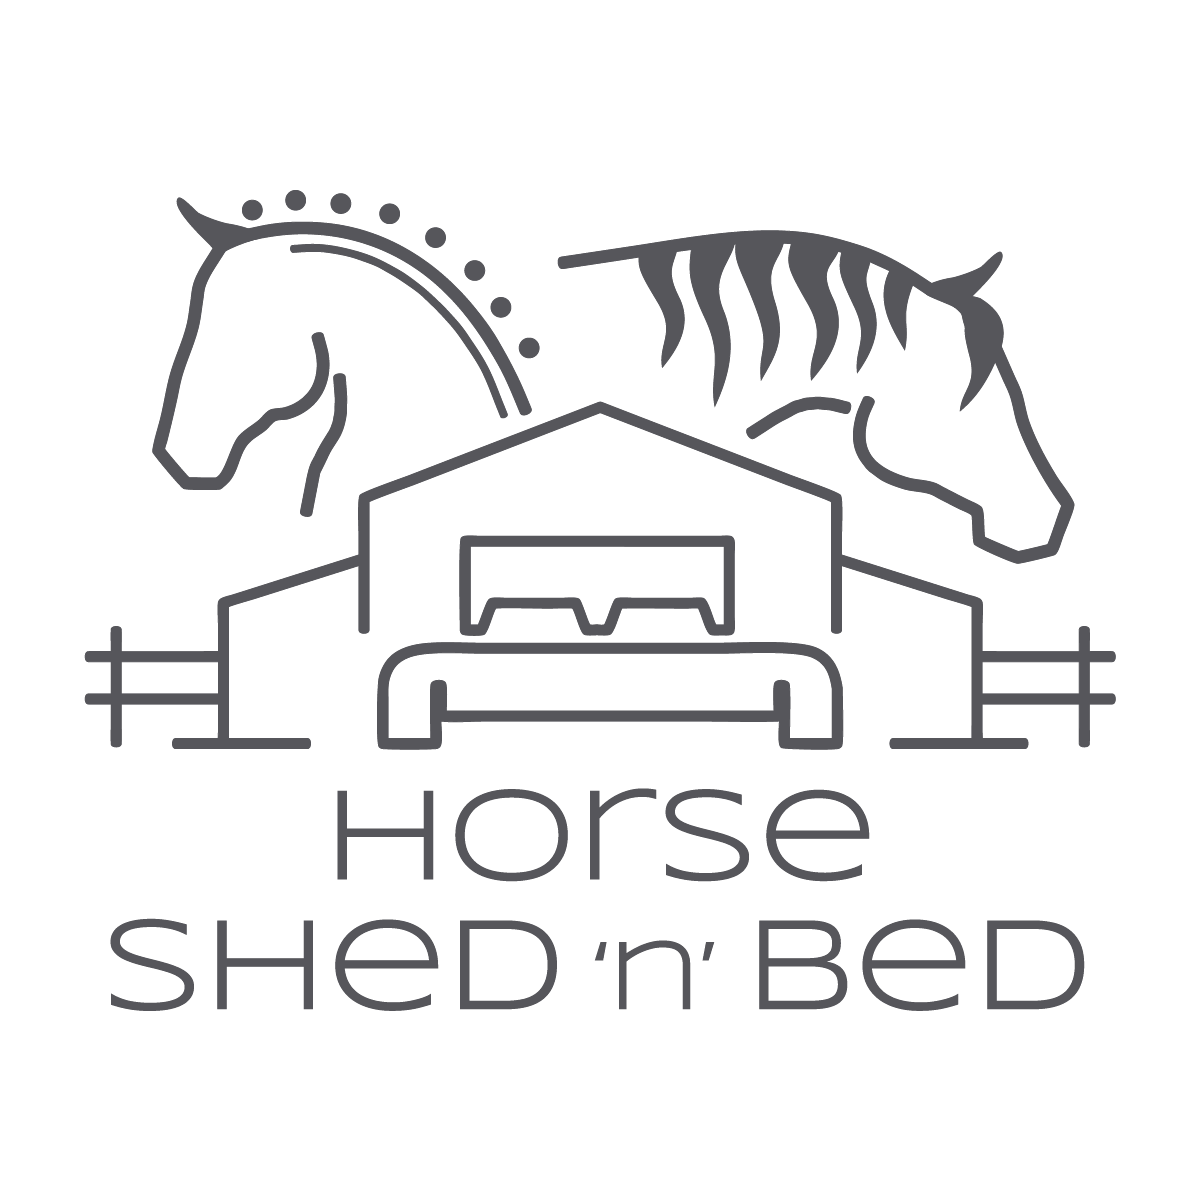 Horse Shed n Bed